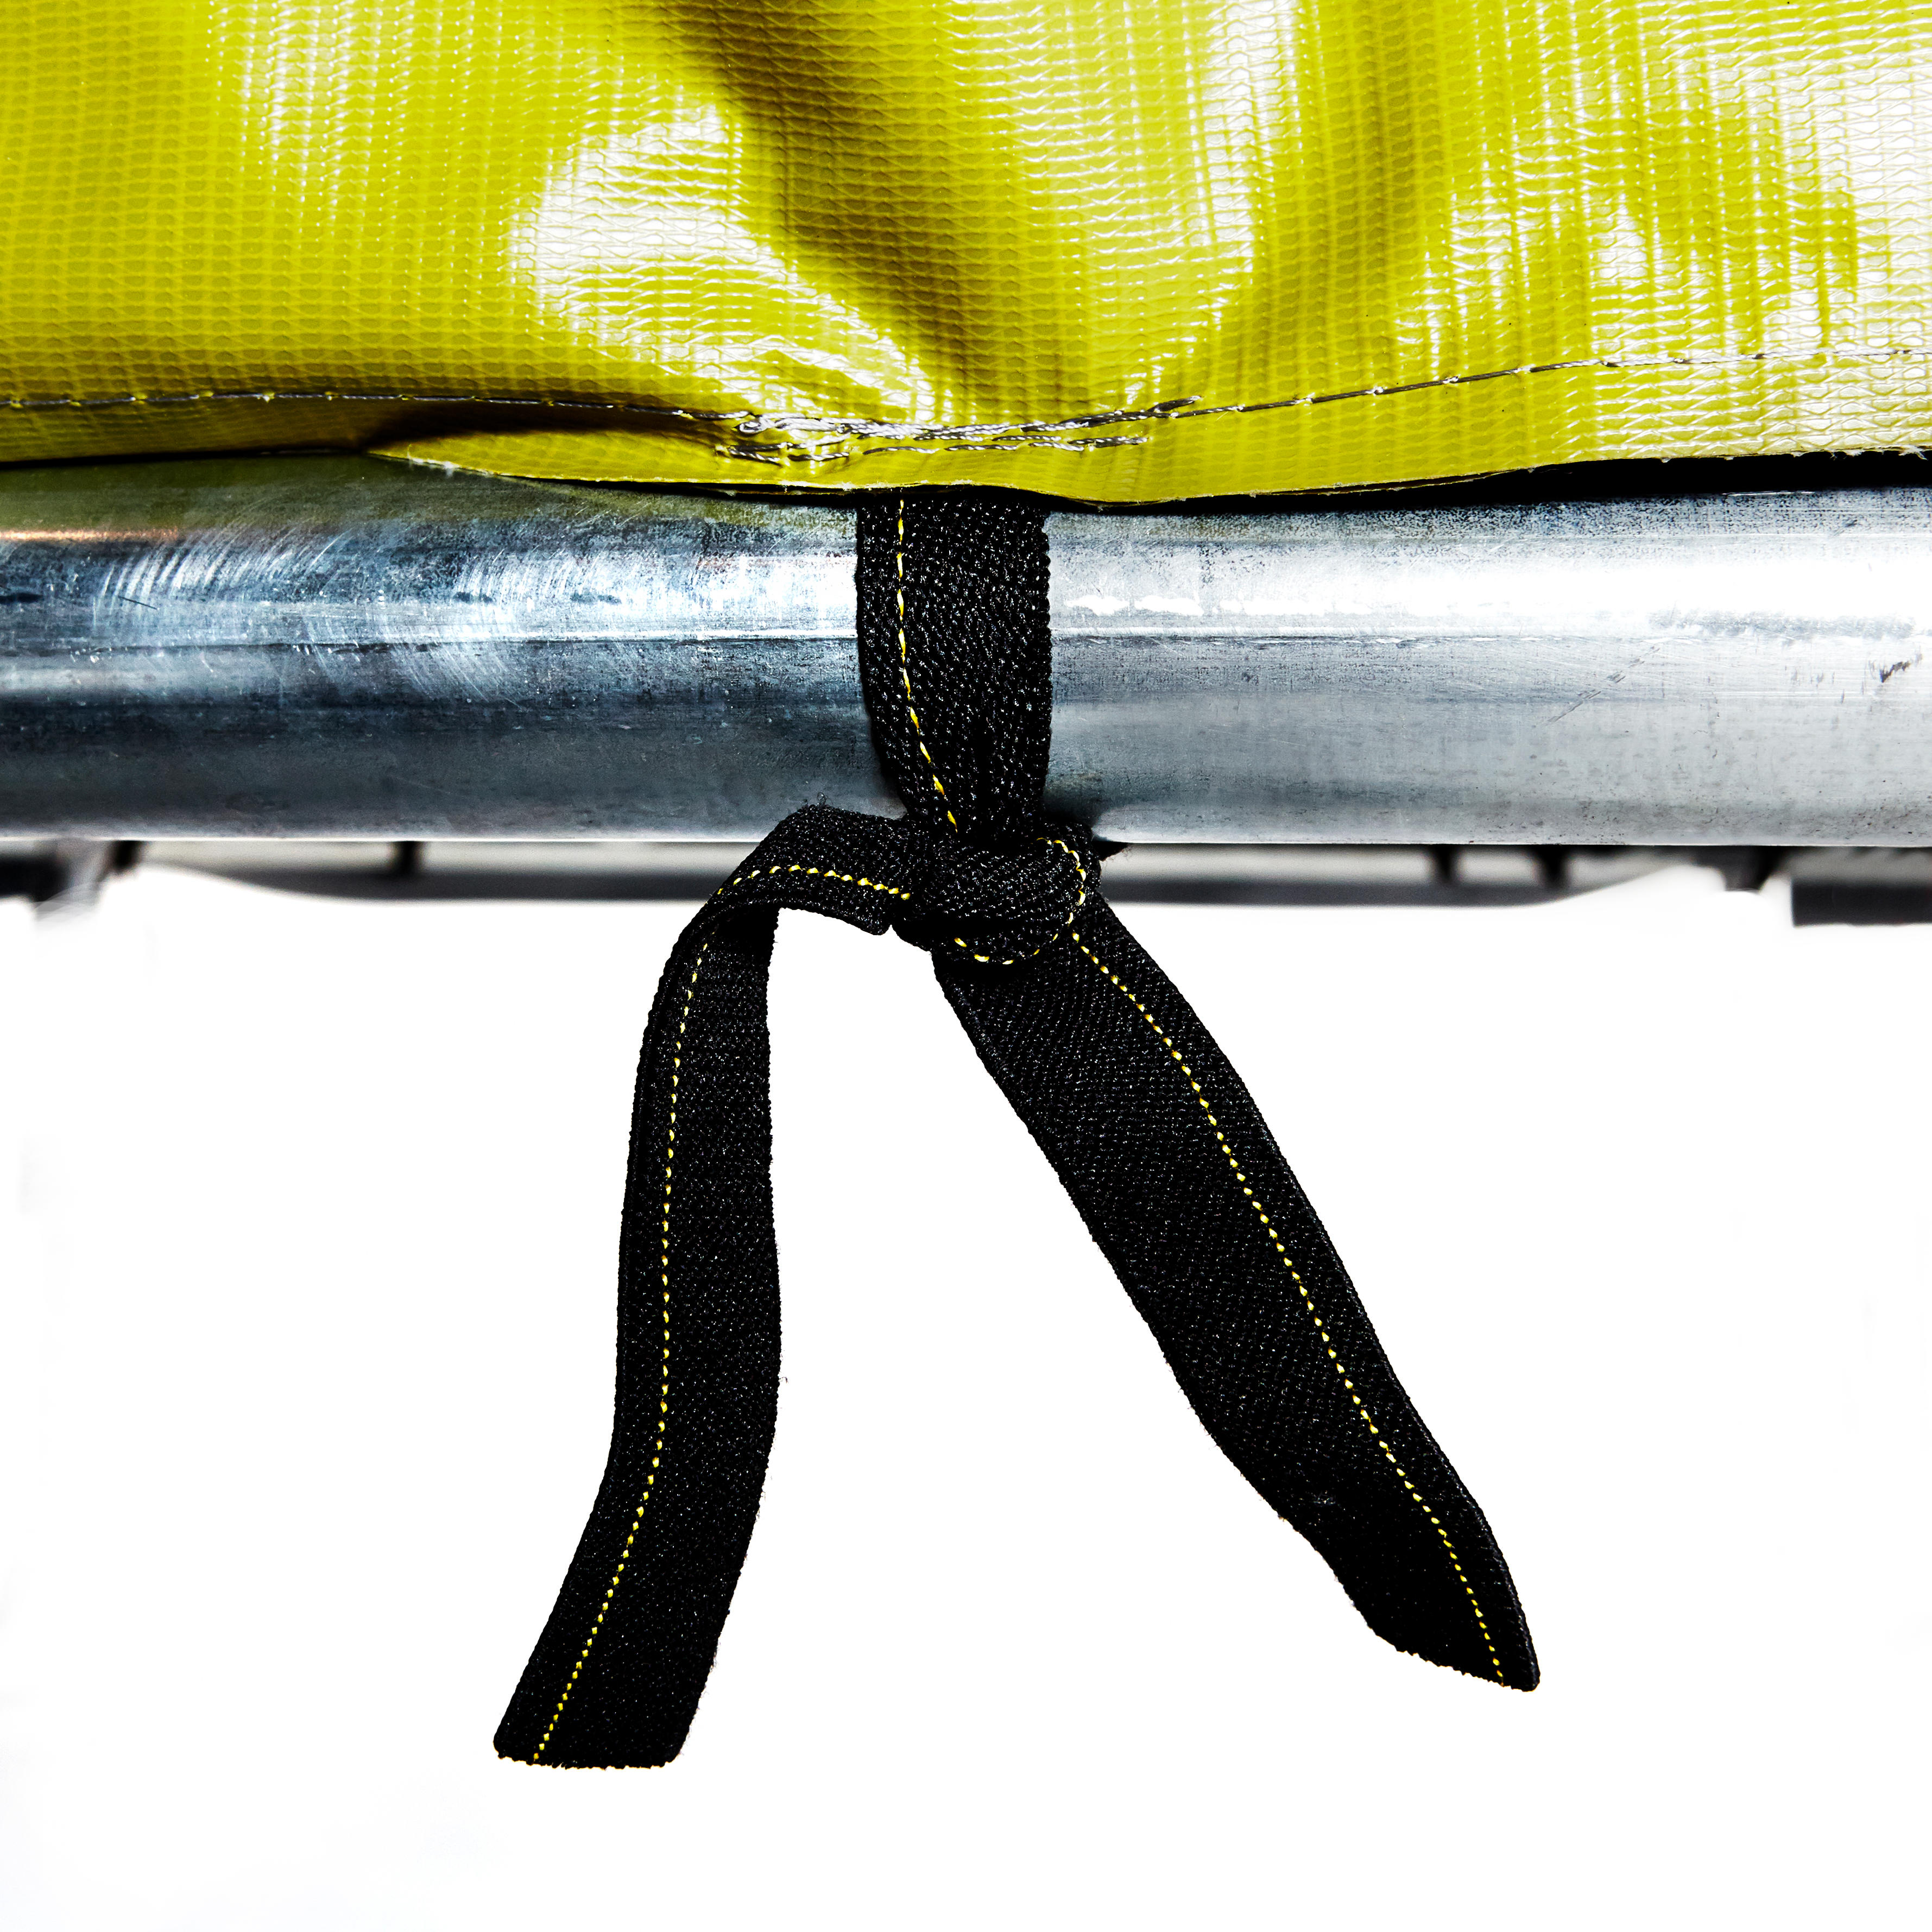 Essential 240 Trampoline and Protective Netting - Green